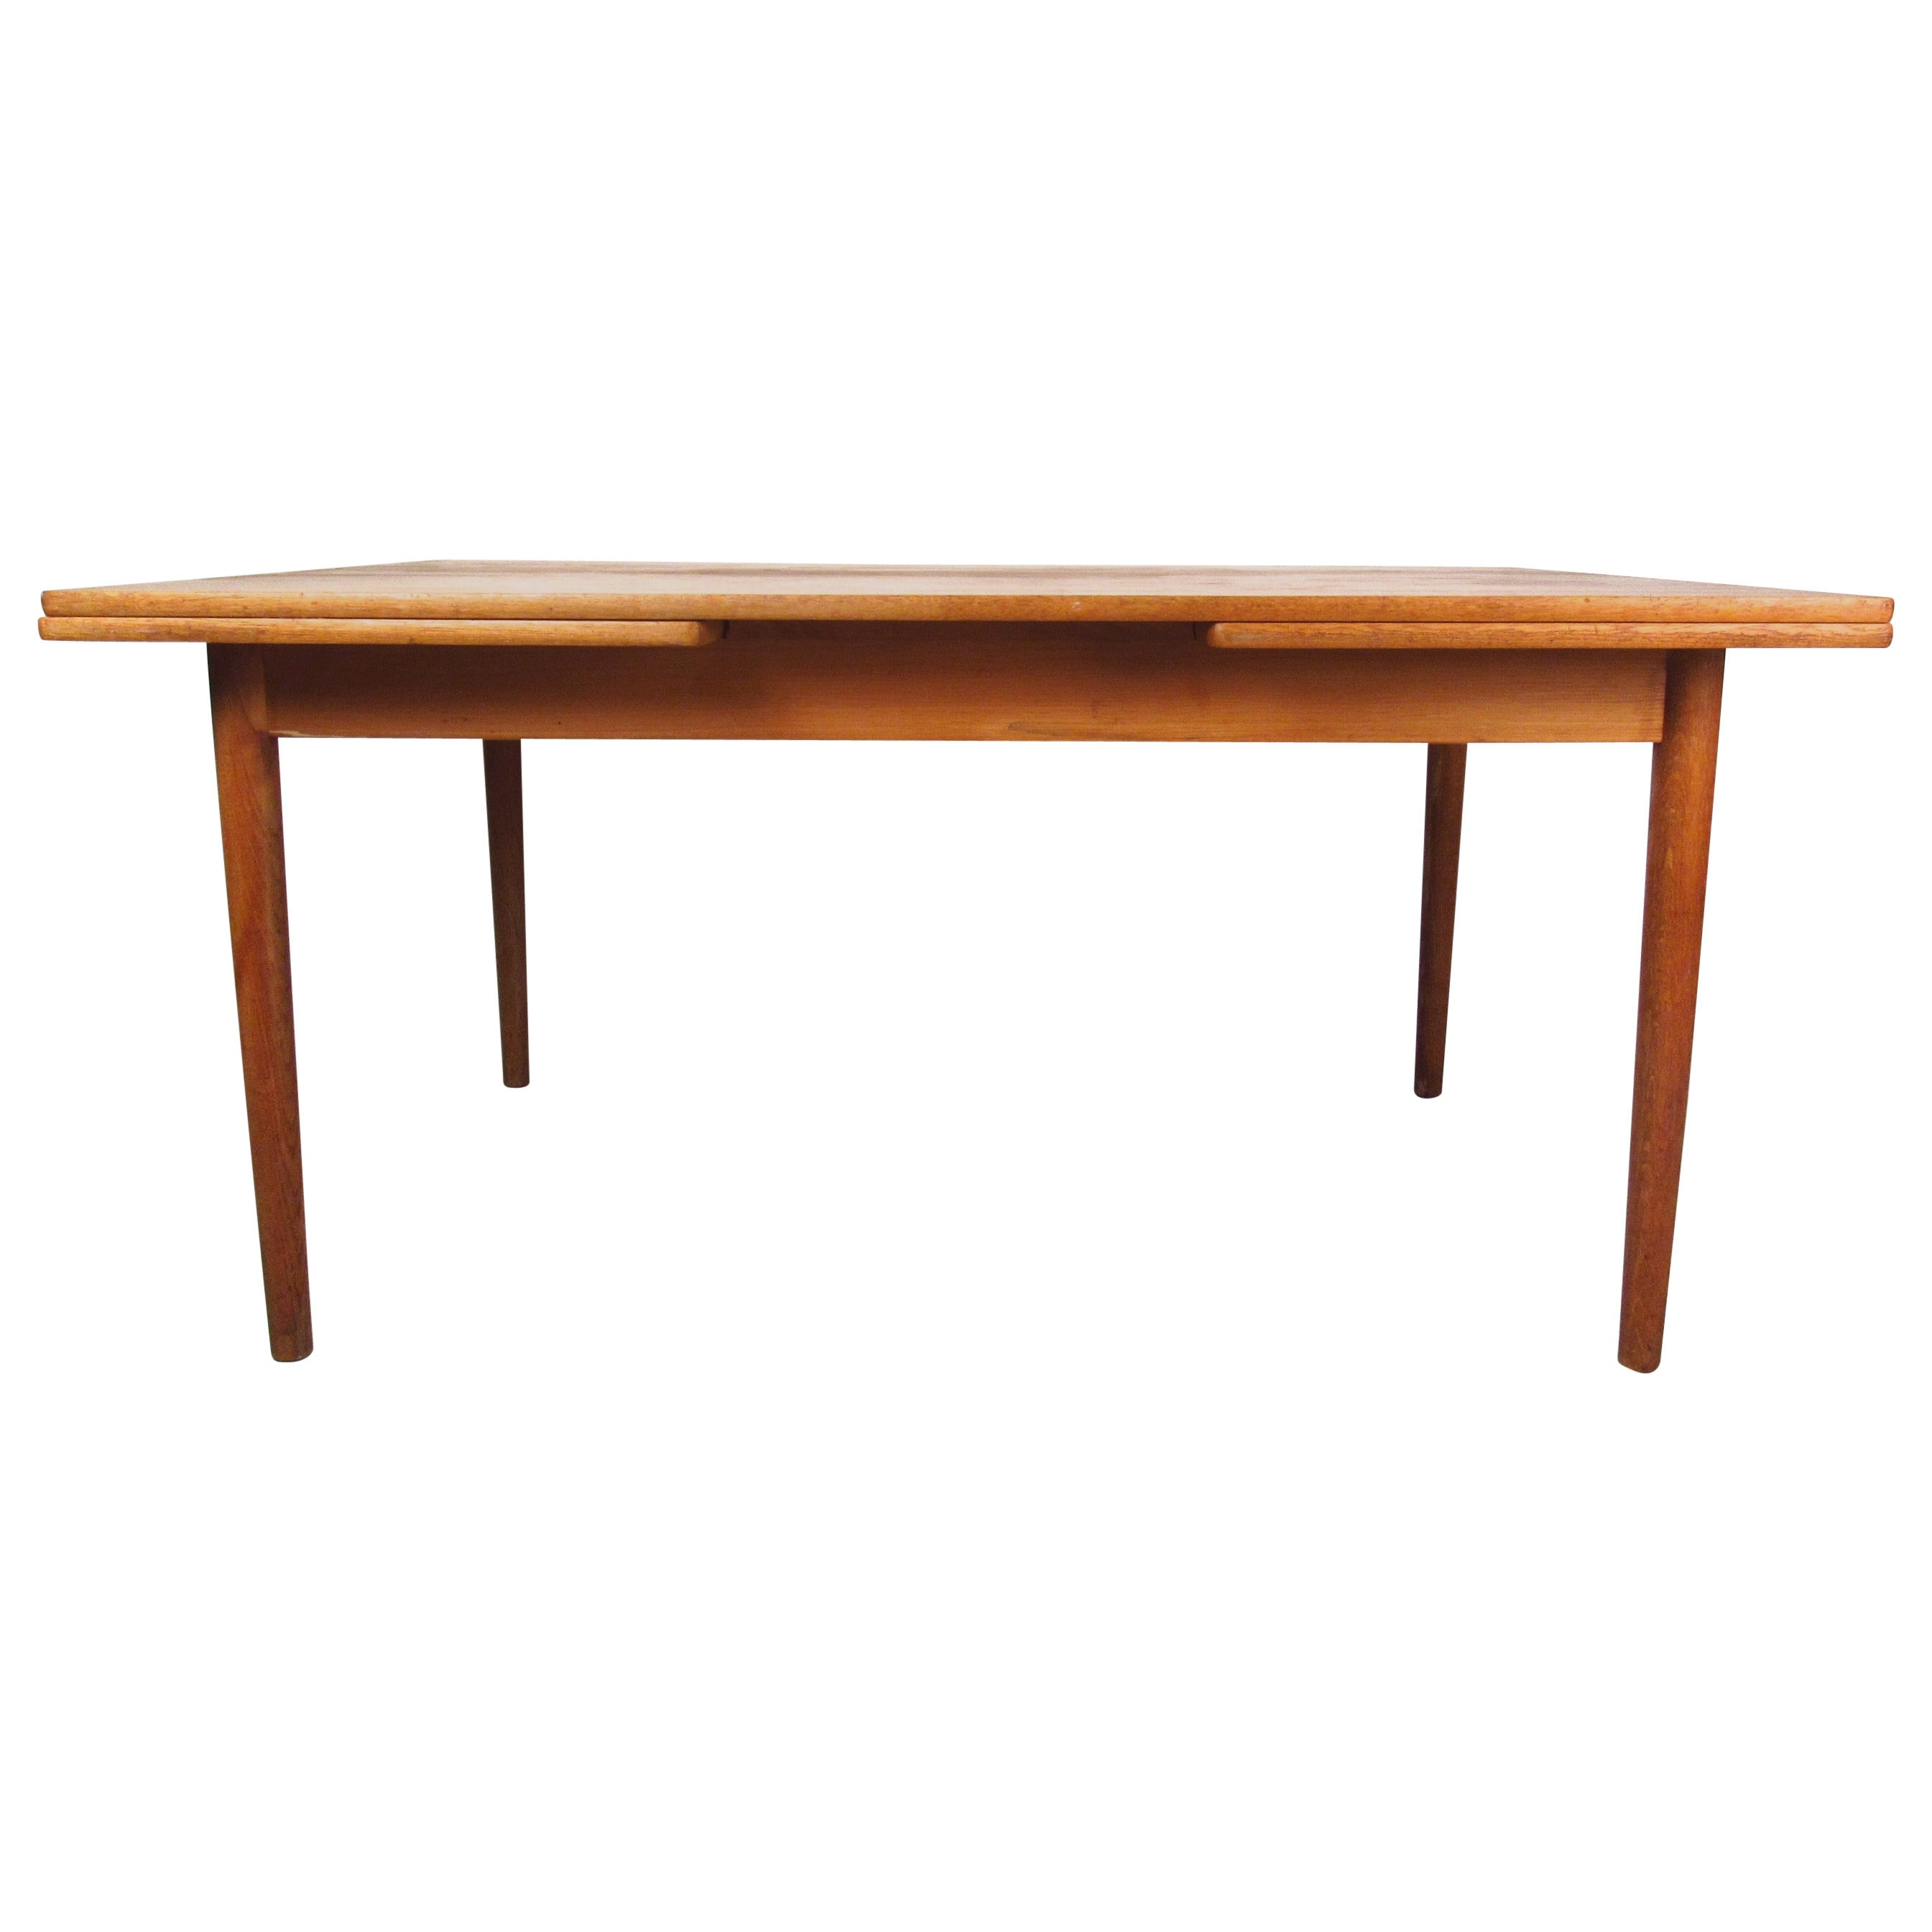 Mid-Century Modern Draw-Leaf Oak Dining Table by Hans Wegner for Andreas Tuck